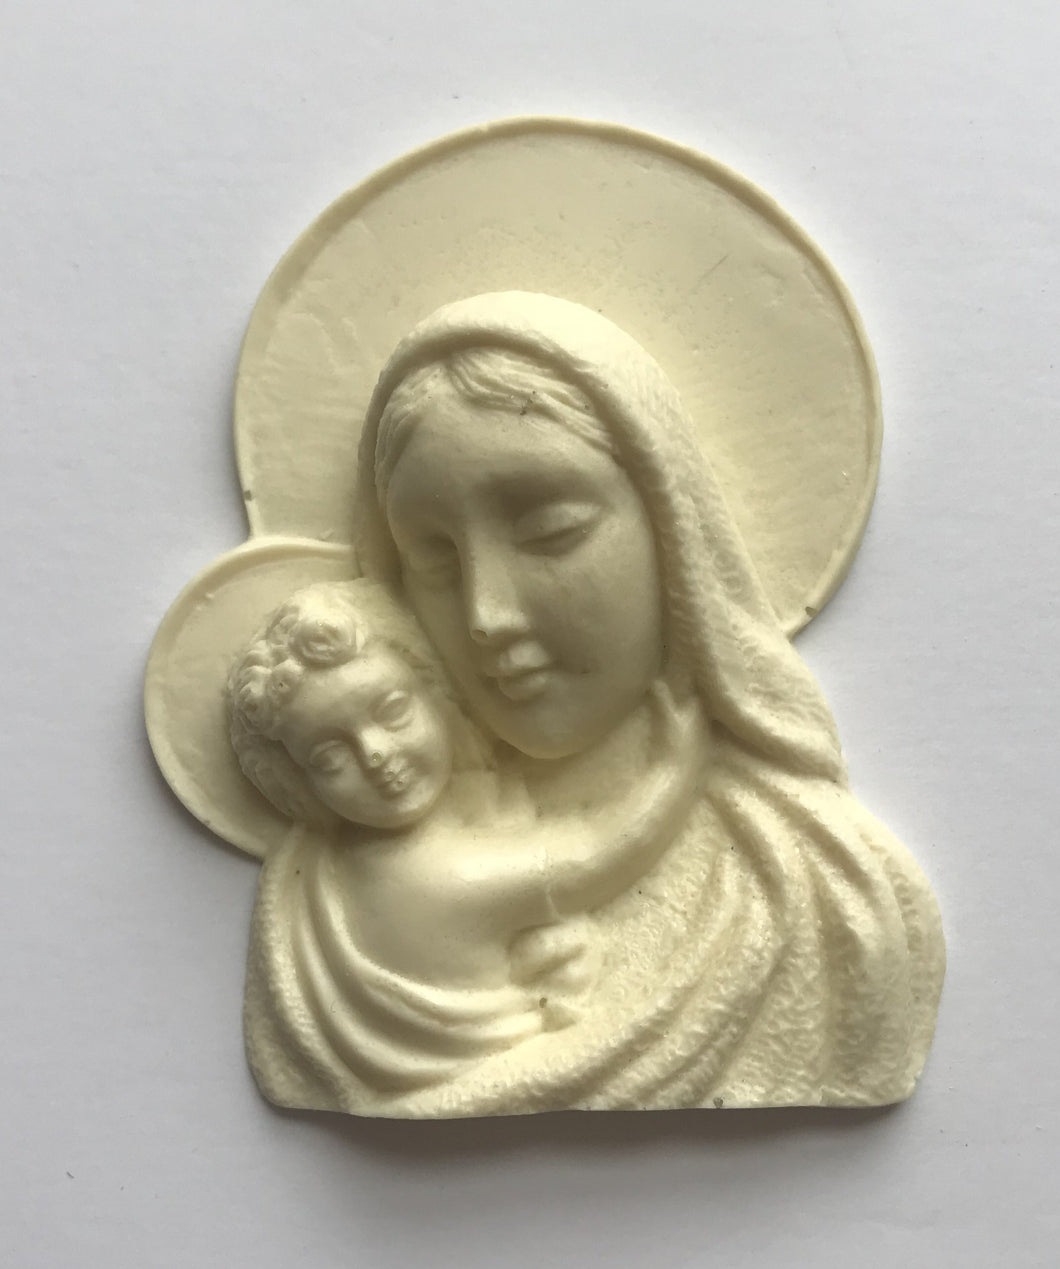 Virgin Mary with baby Jesus silicone mold